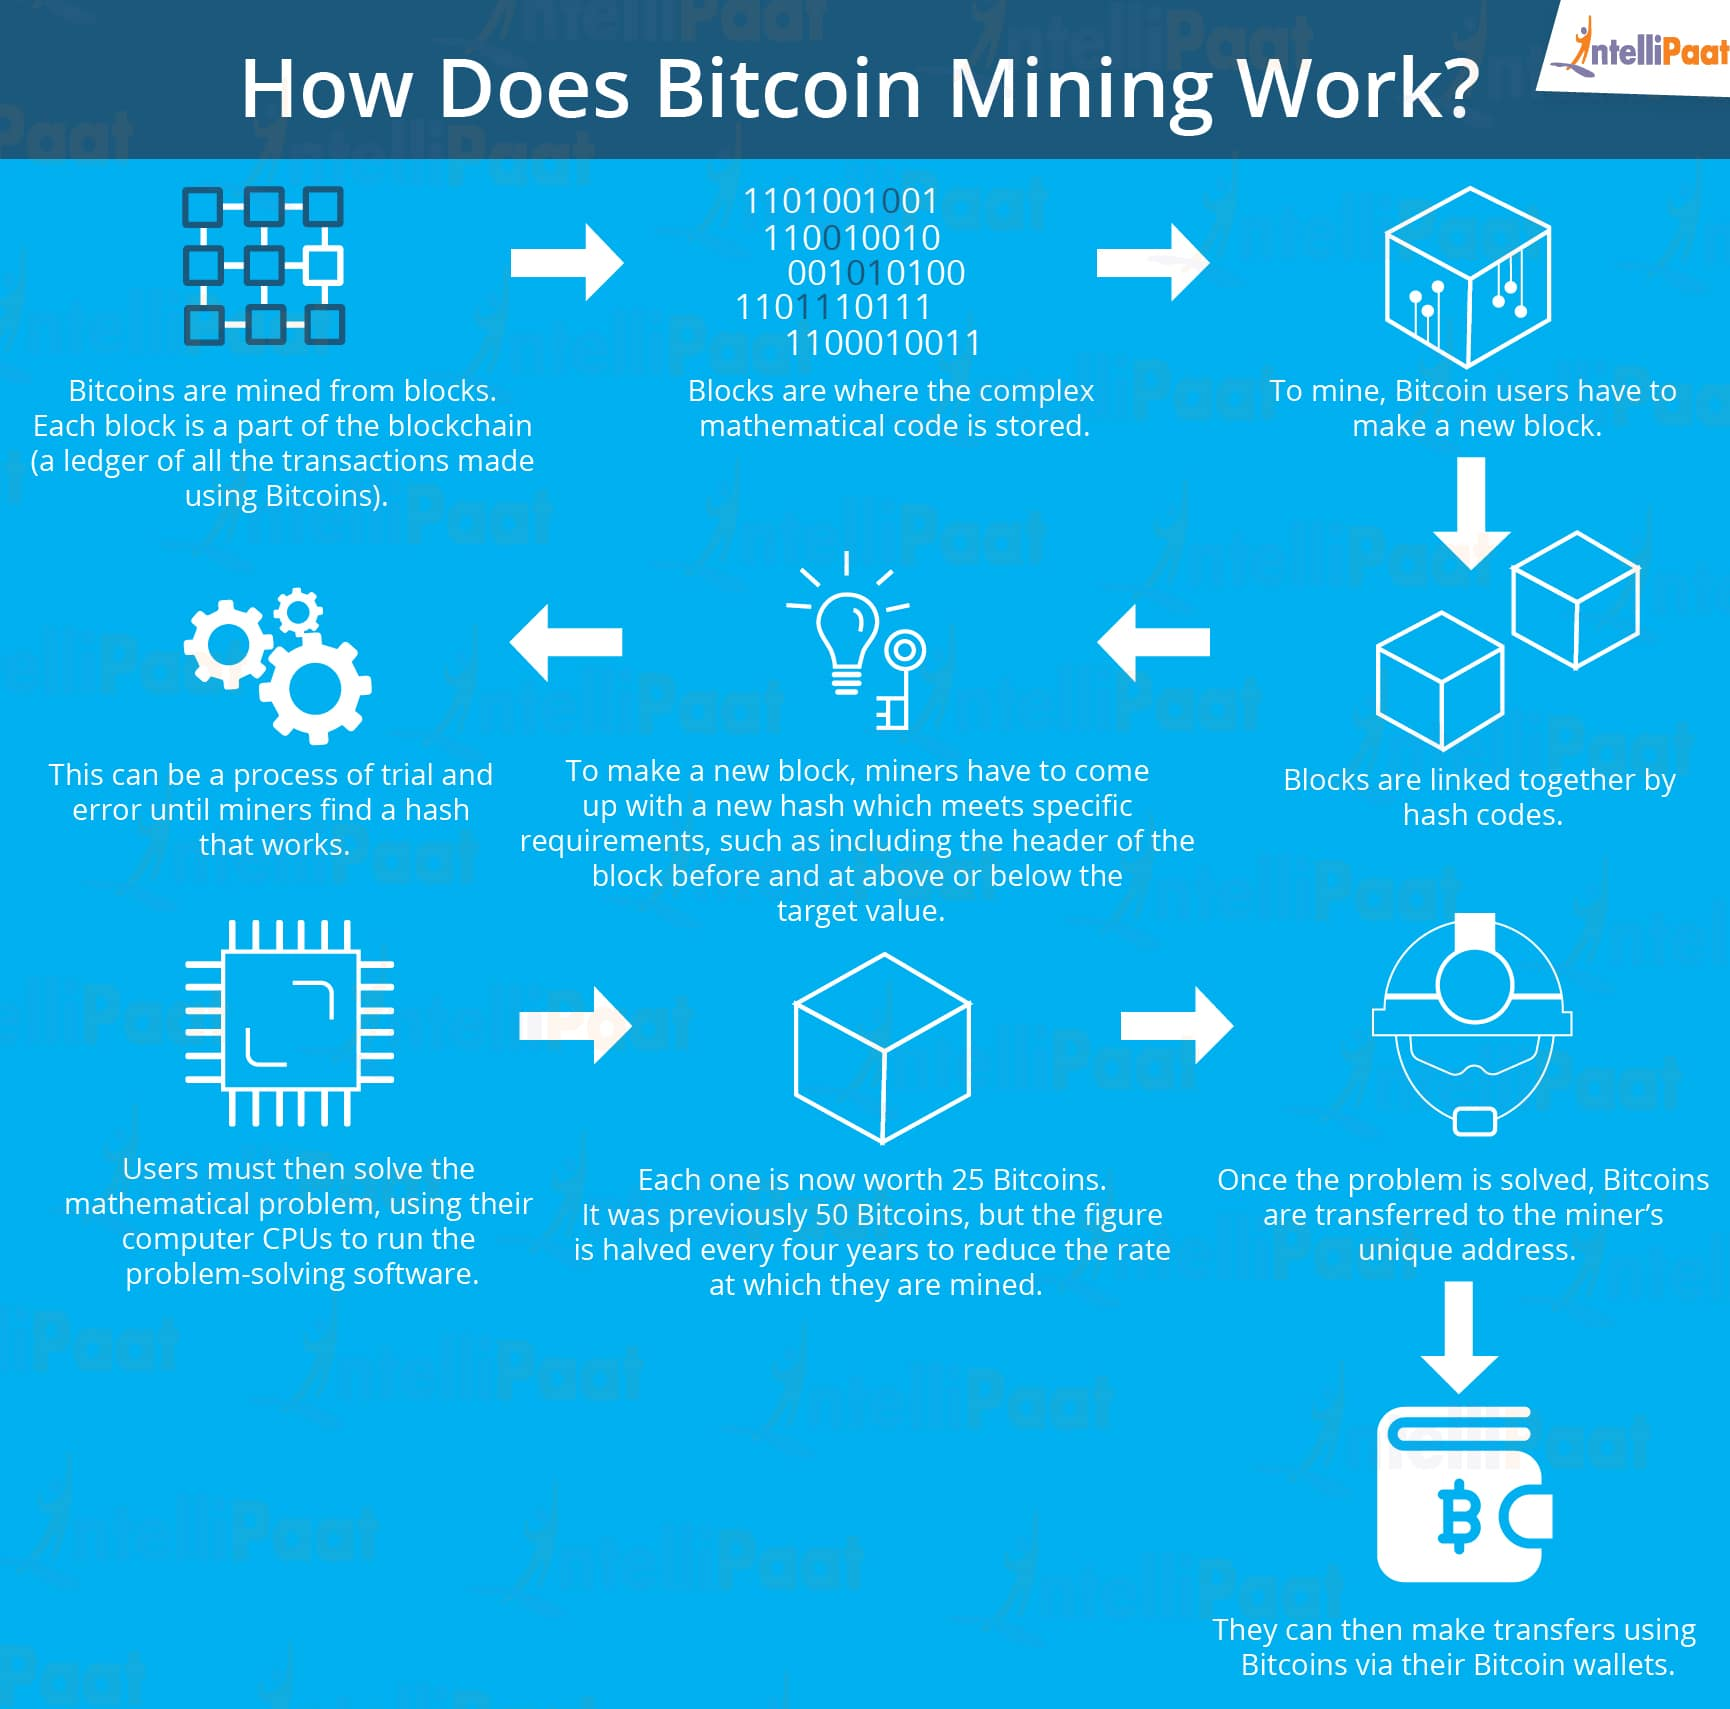 What is Blockchain Mining and who is a Blockchain Miner? - Intellipaat